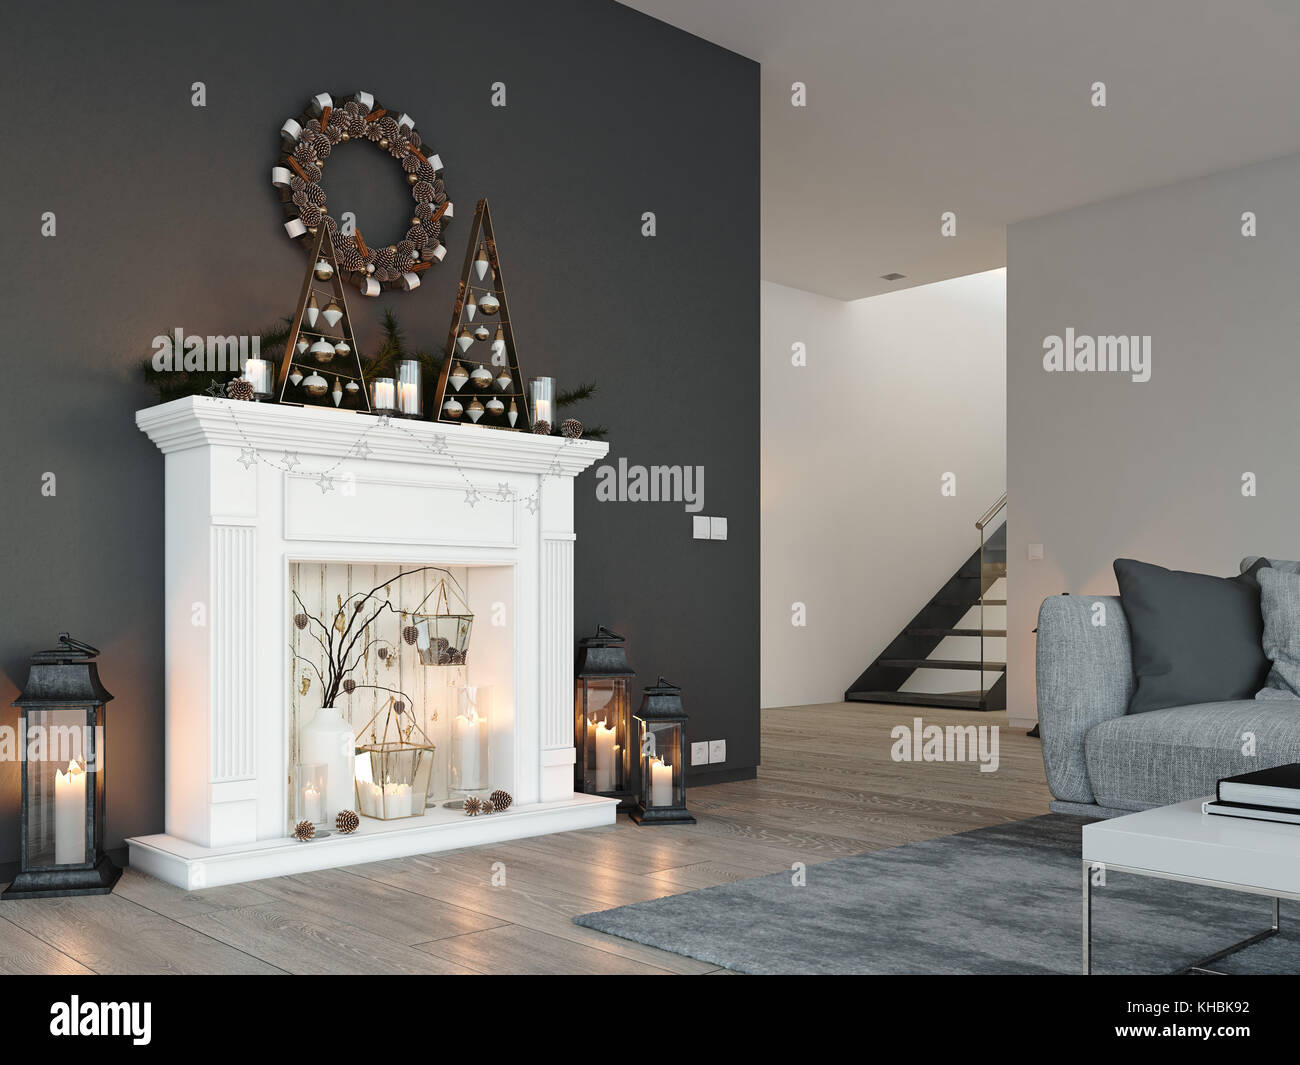 Decorare Caminetto A Natale Il Rendering 3d Home Con Camino In Moderno Appartamento